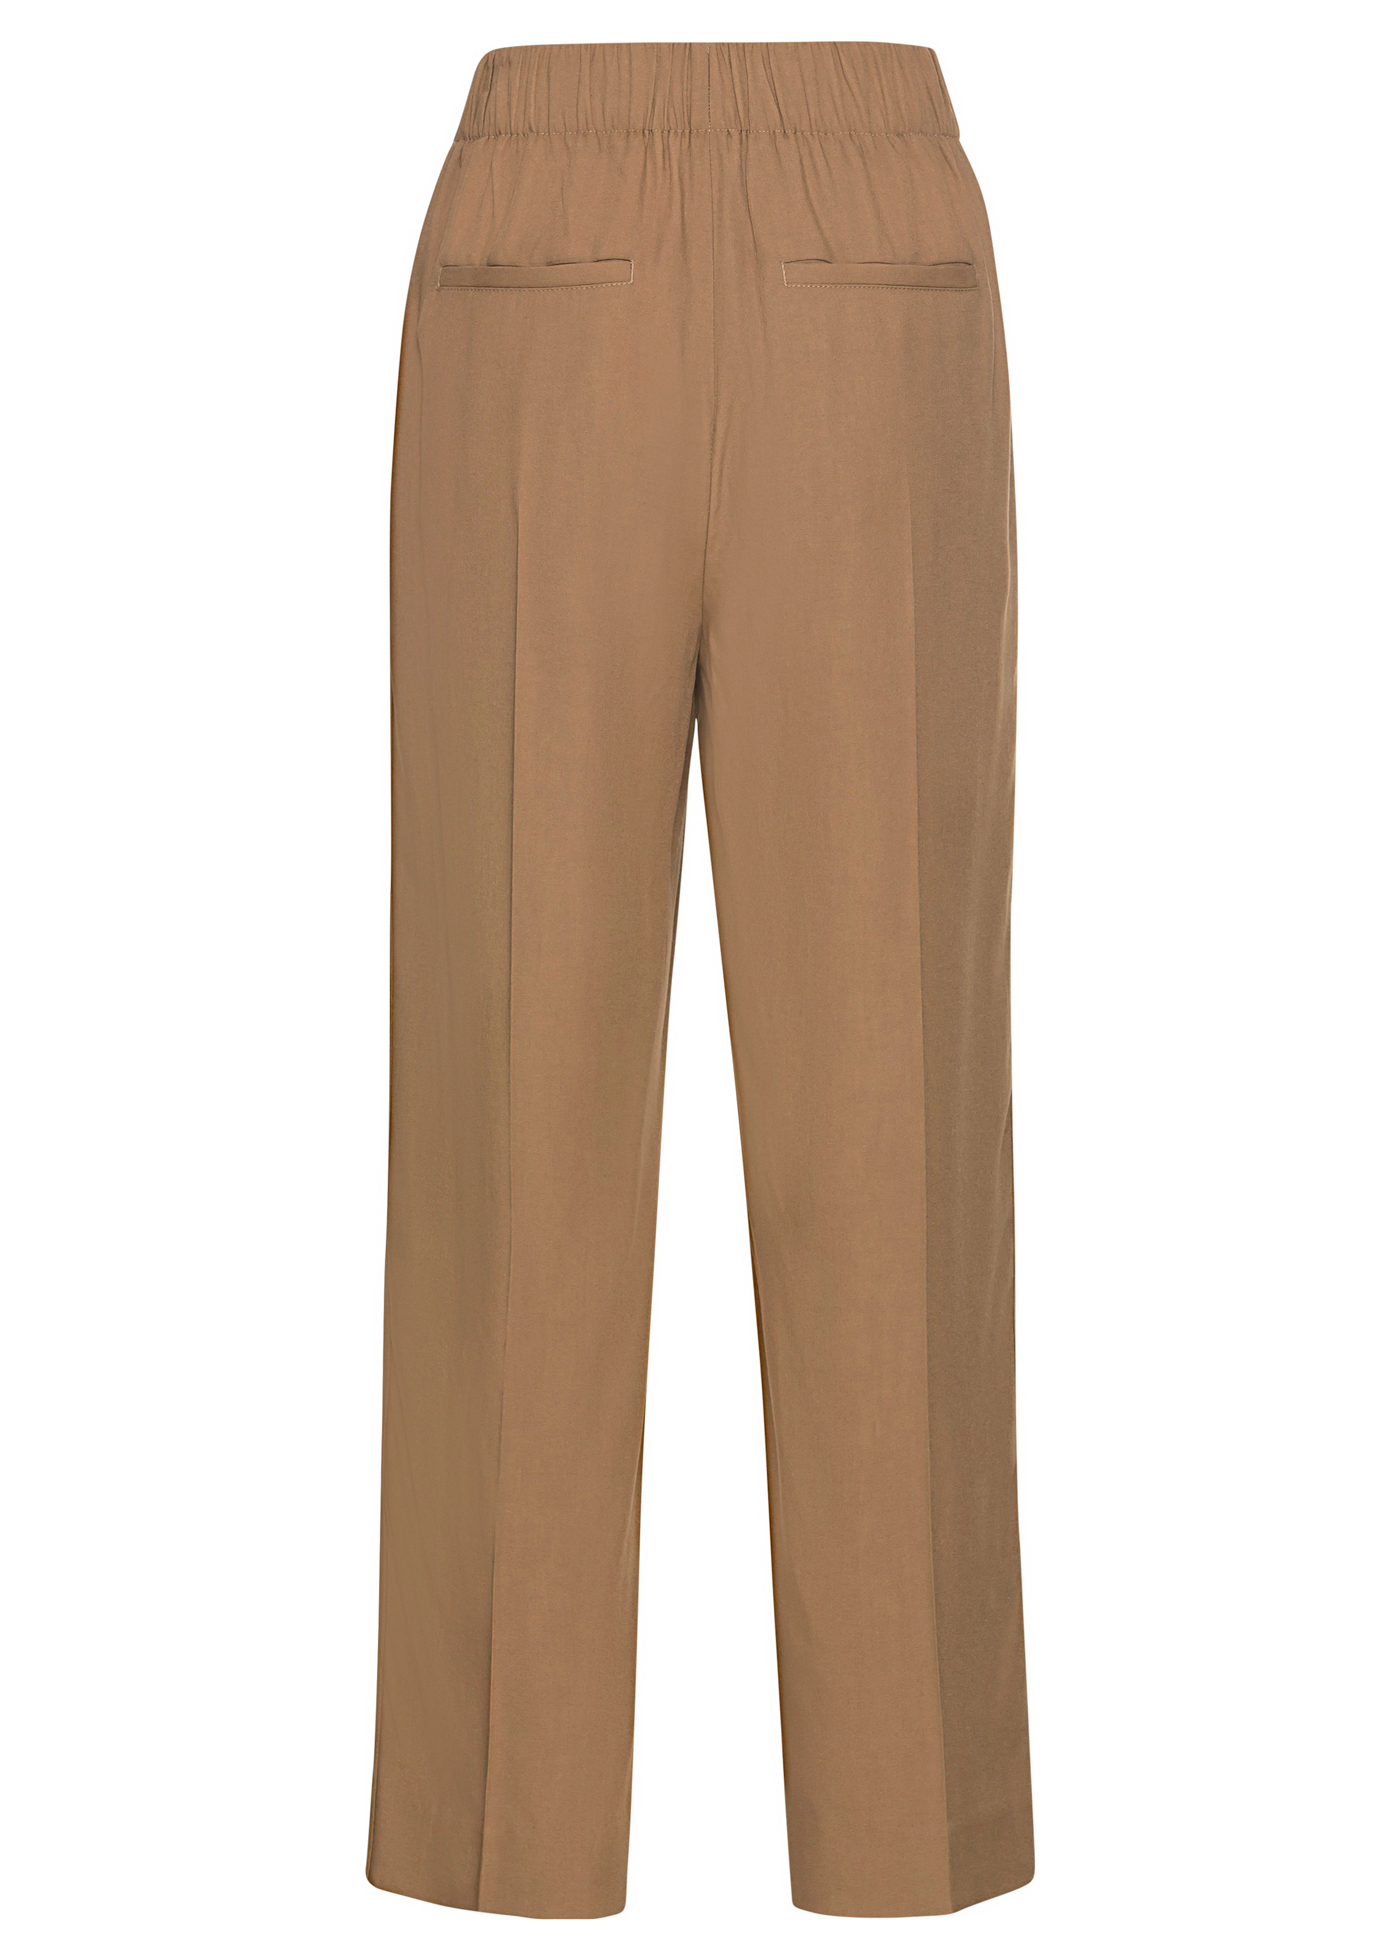 CASUAL PULL ON PANT / CASUAL PULL ON PANT image number 1